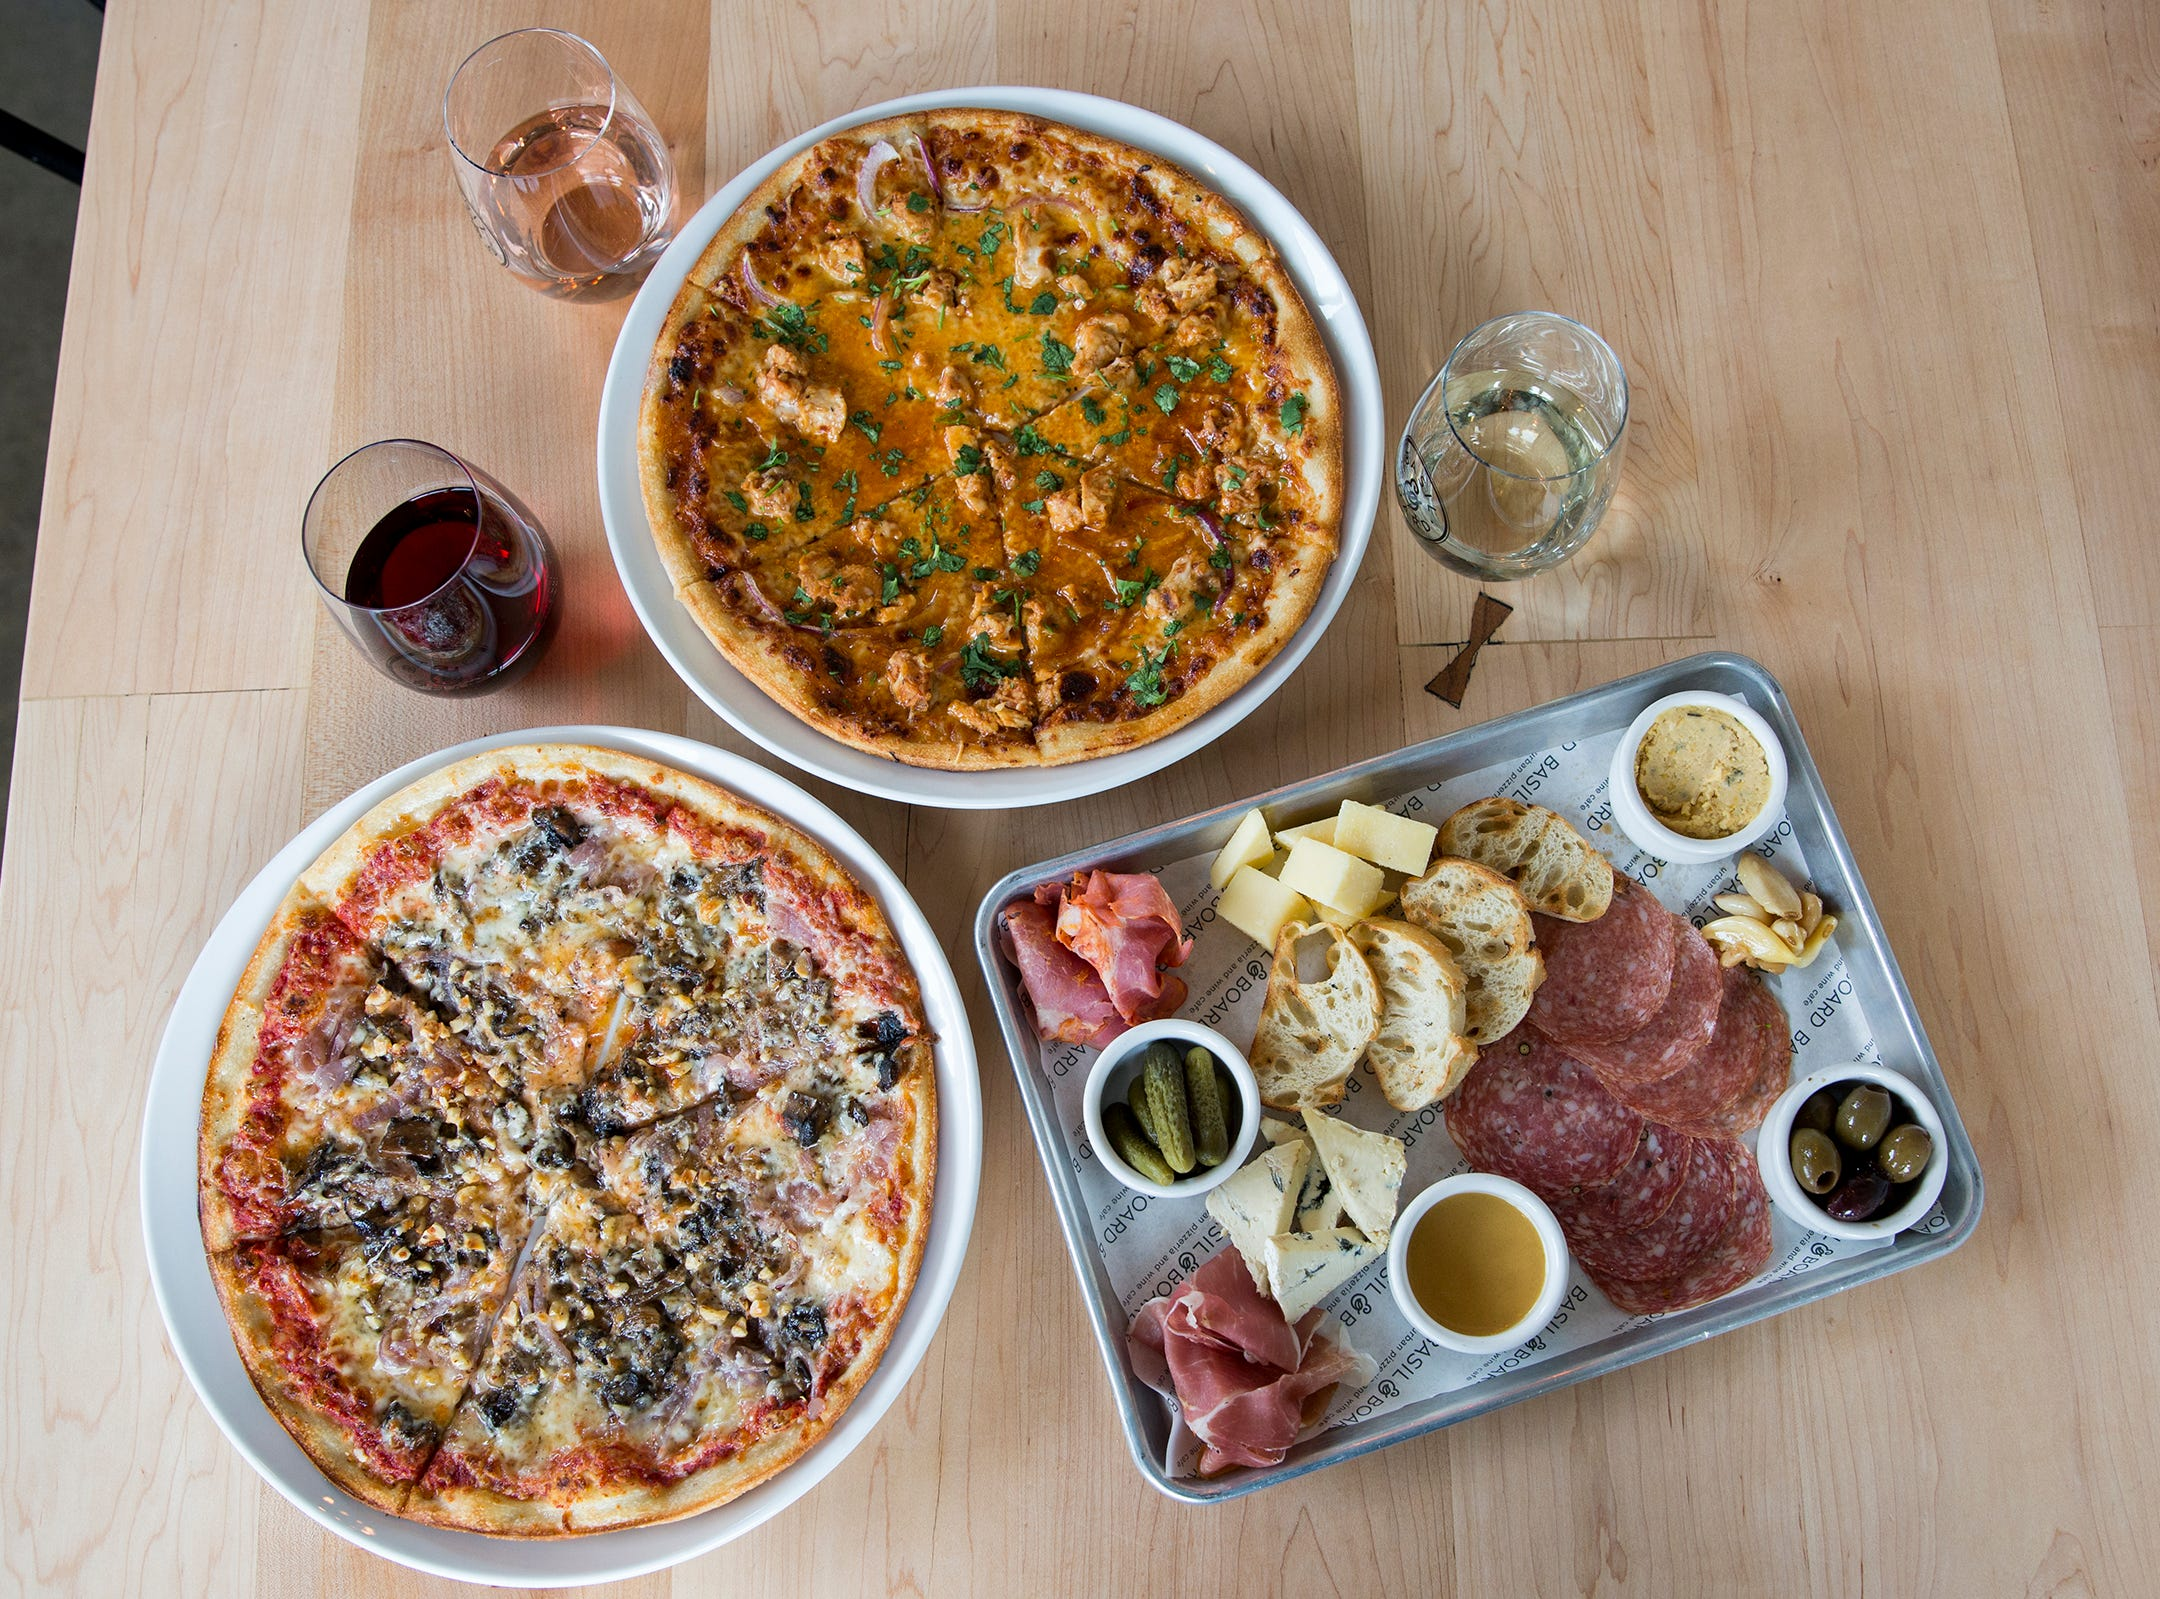 The Pacific Crest Trail pizza, the BBQ Bird pizza and a small butcher's board are pictured with three glasses of wine at Basil & Board in Salem on Tuesday, Feb. 26, 2019.